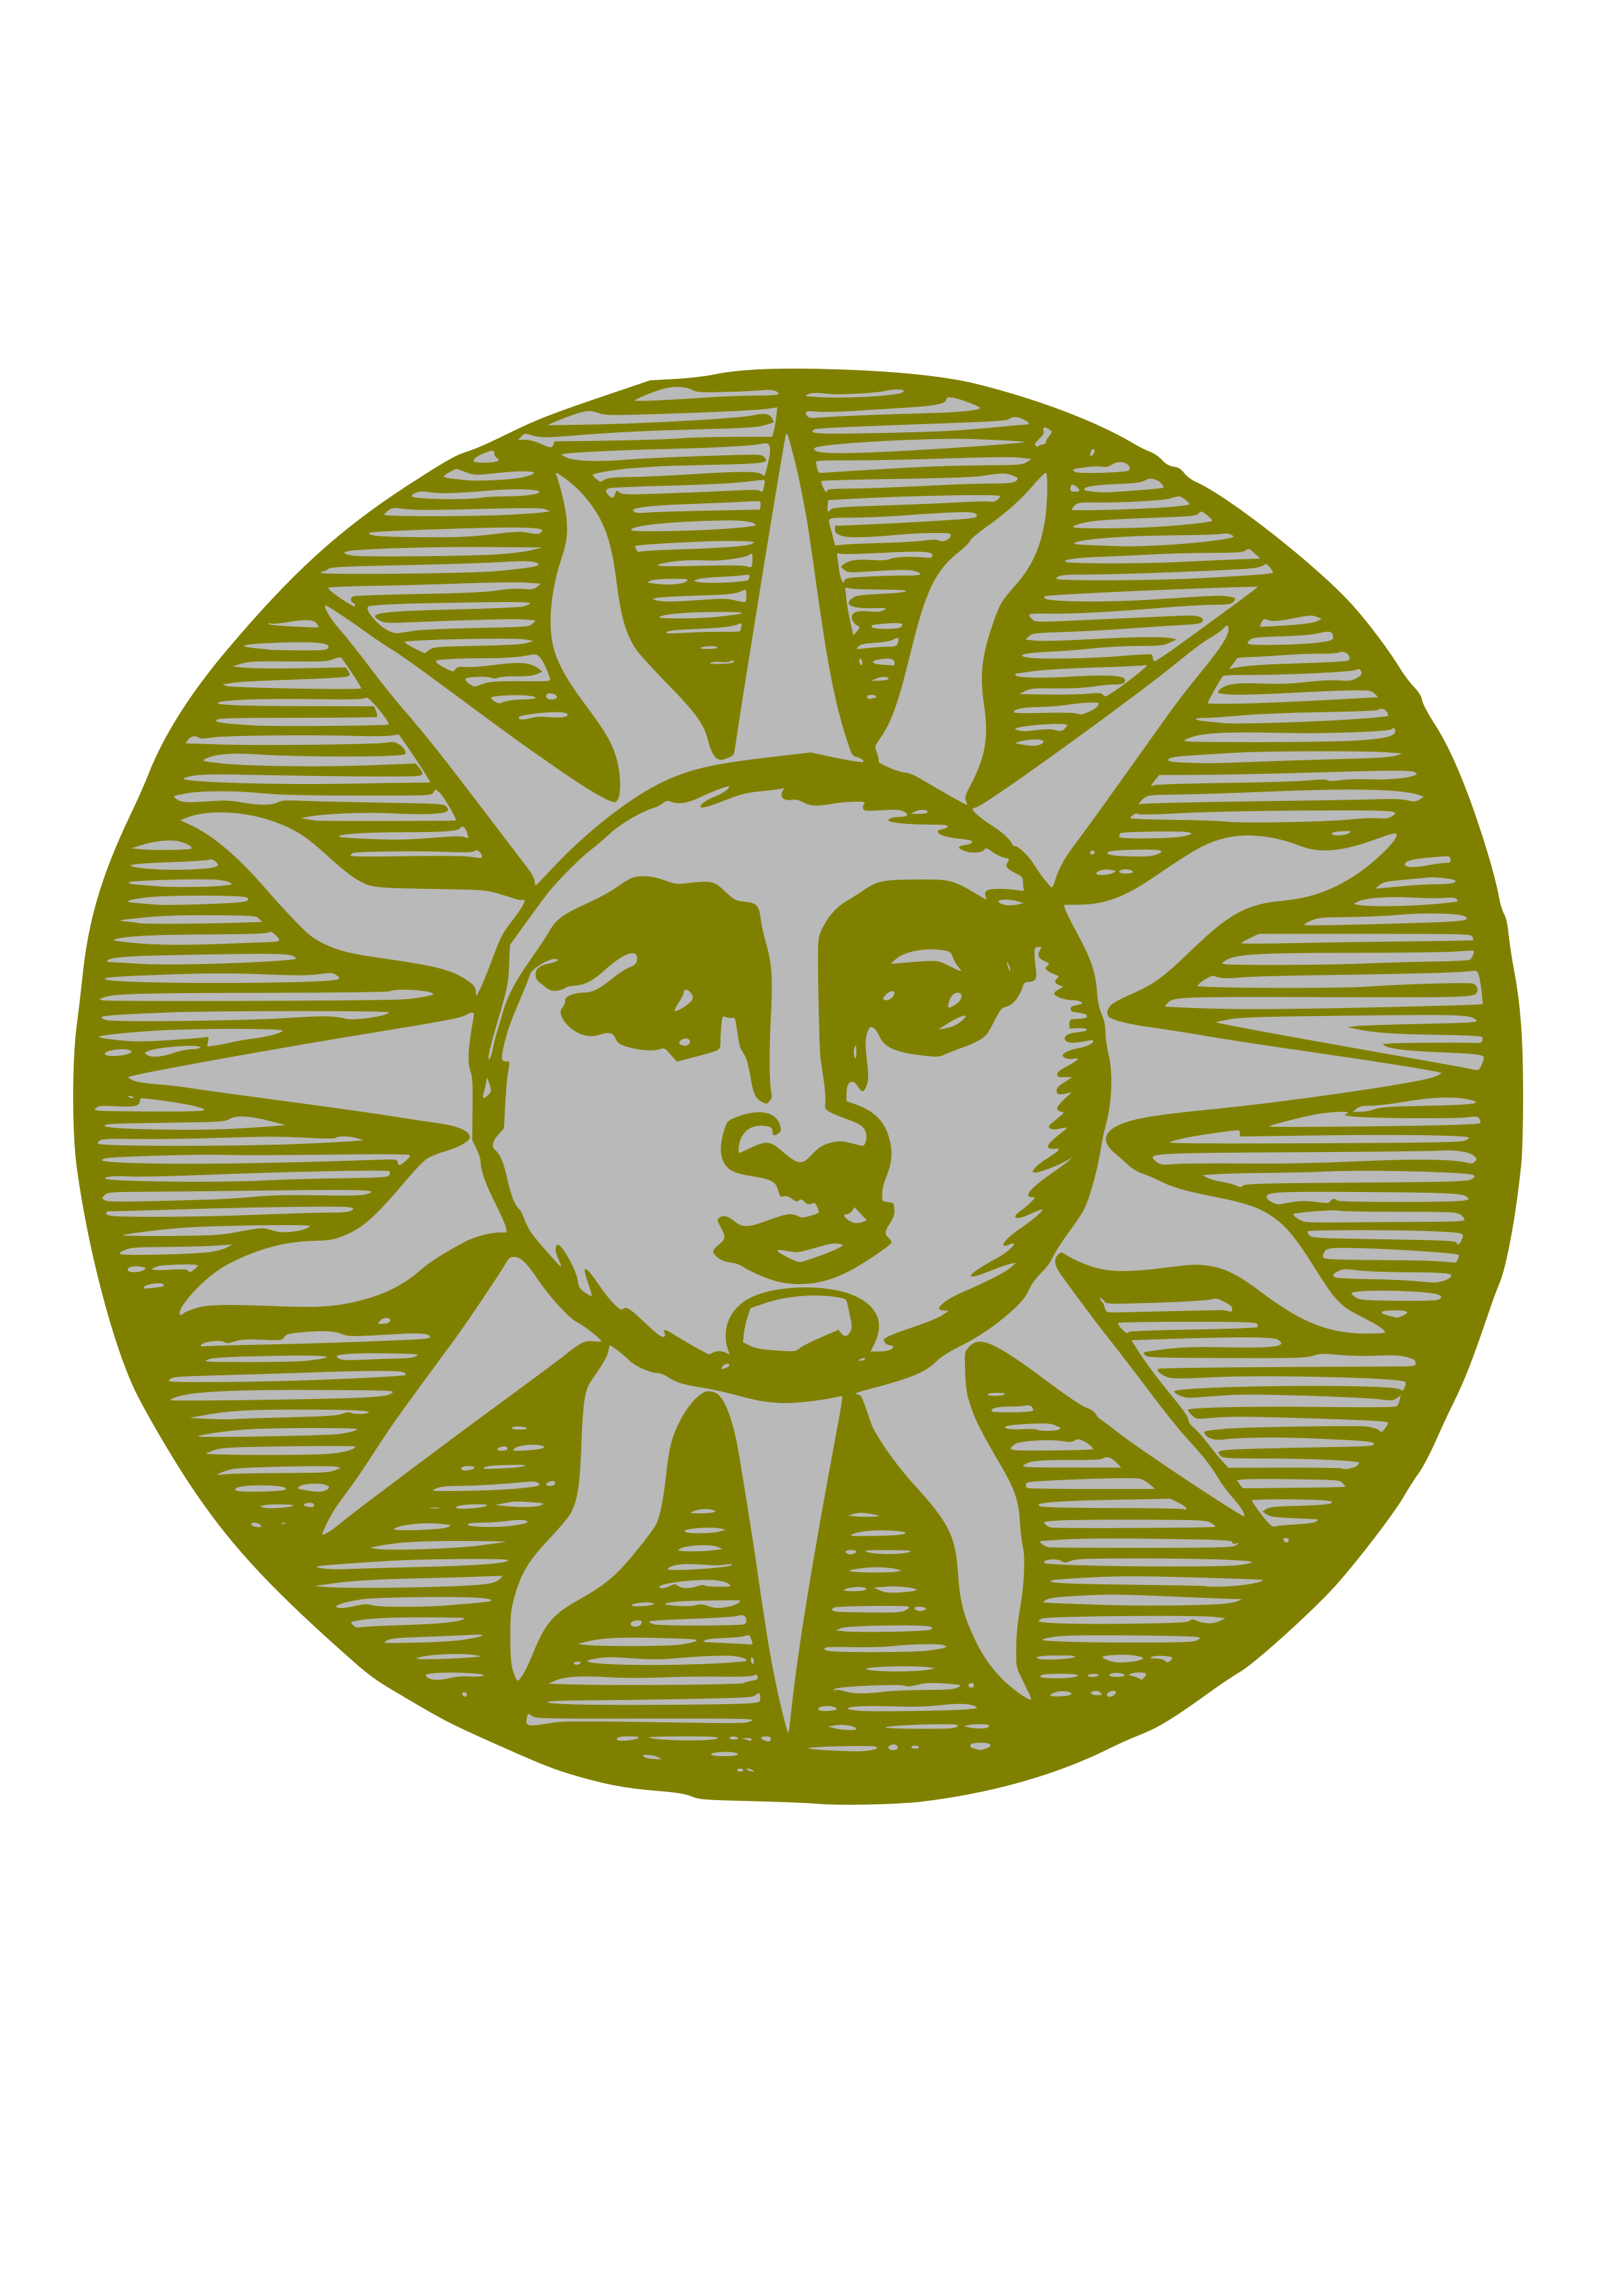 Vintage sun and hill clipart vector transparent download Free Vintage Sun Cliparts, Download Free Clip Art, Free Clip ... vector transparent download